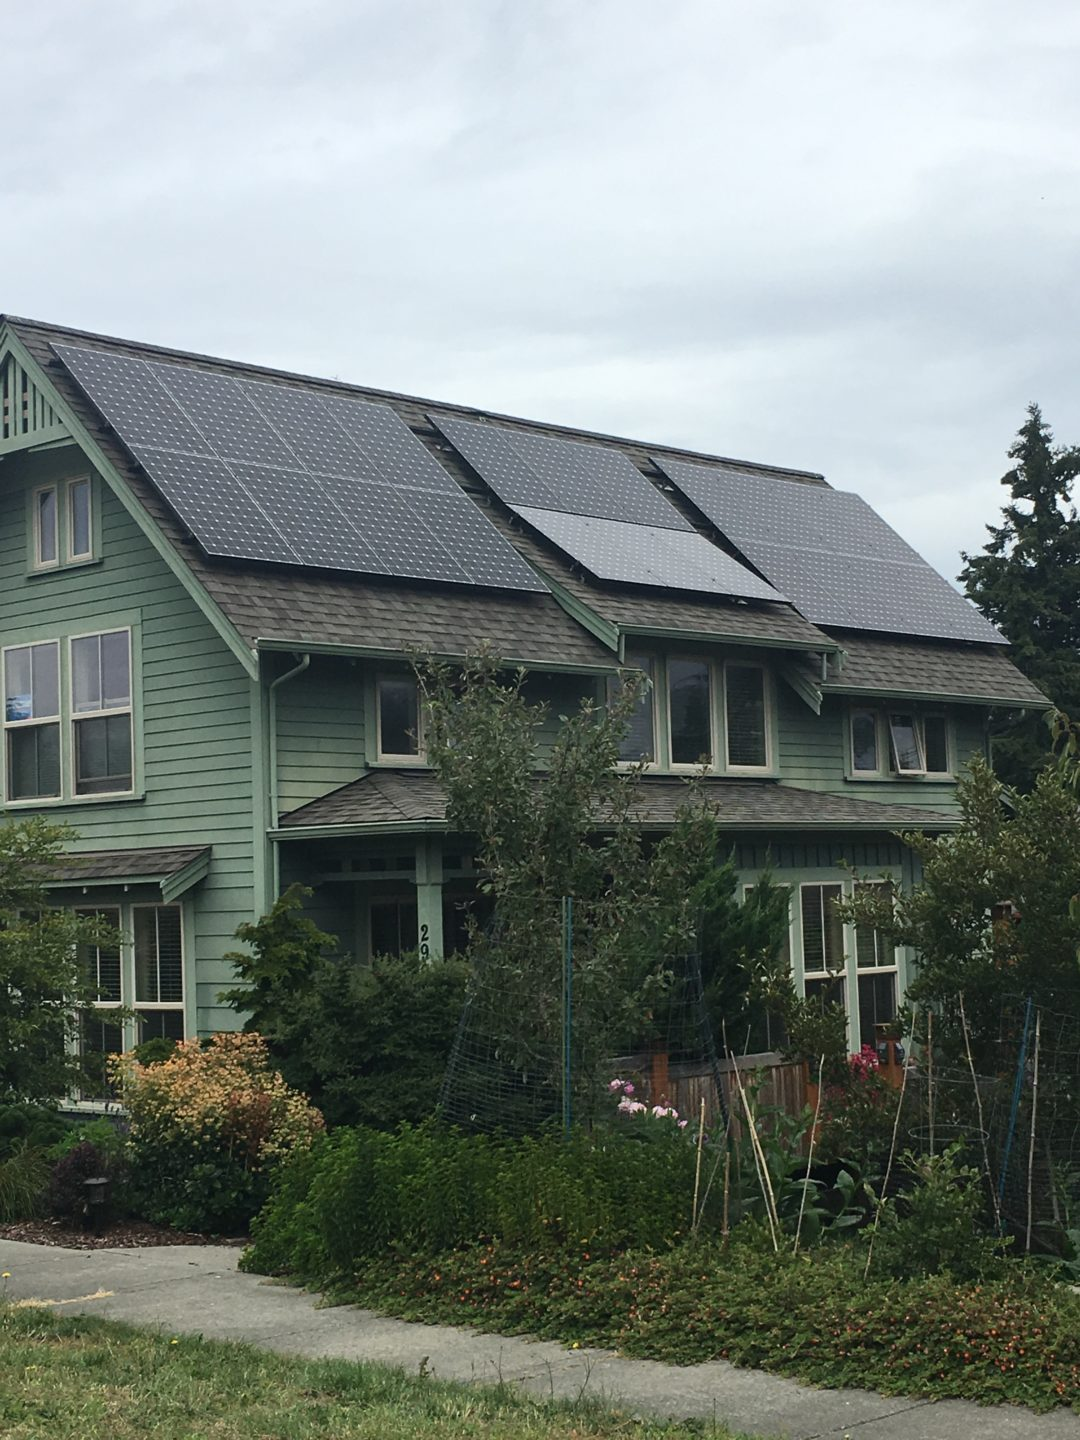 Feit residence, 7.19 KW, Port Townsend, 2016